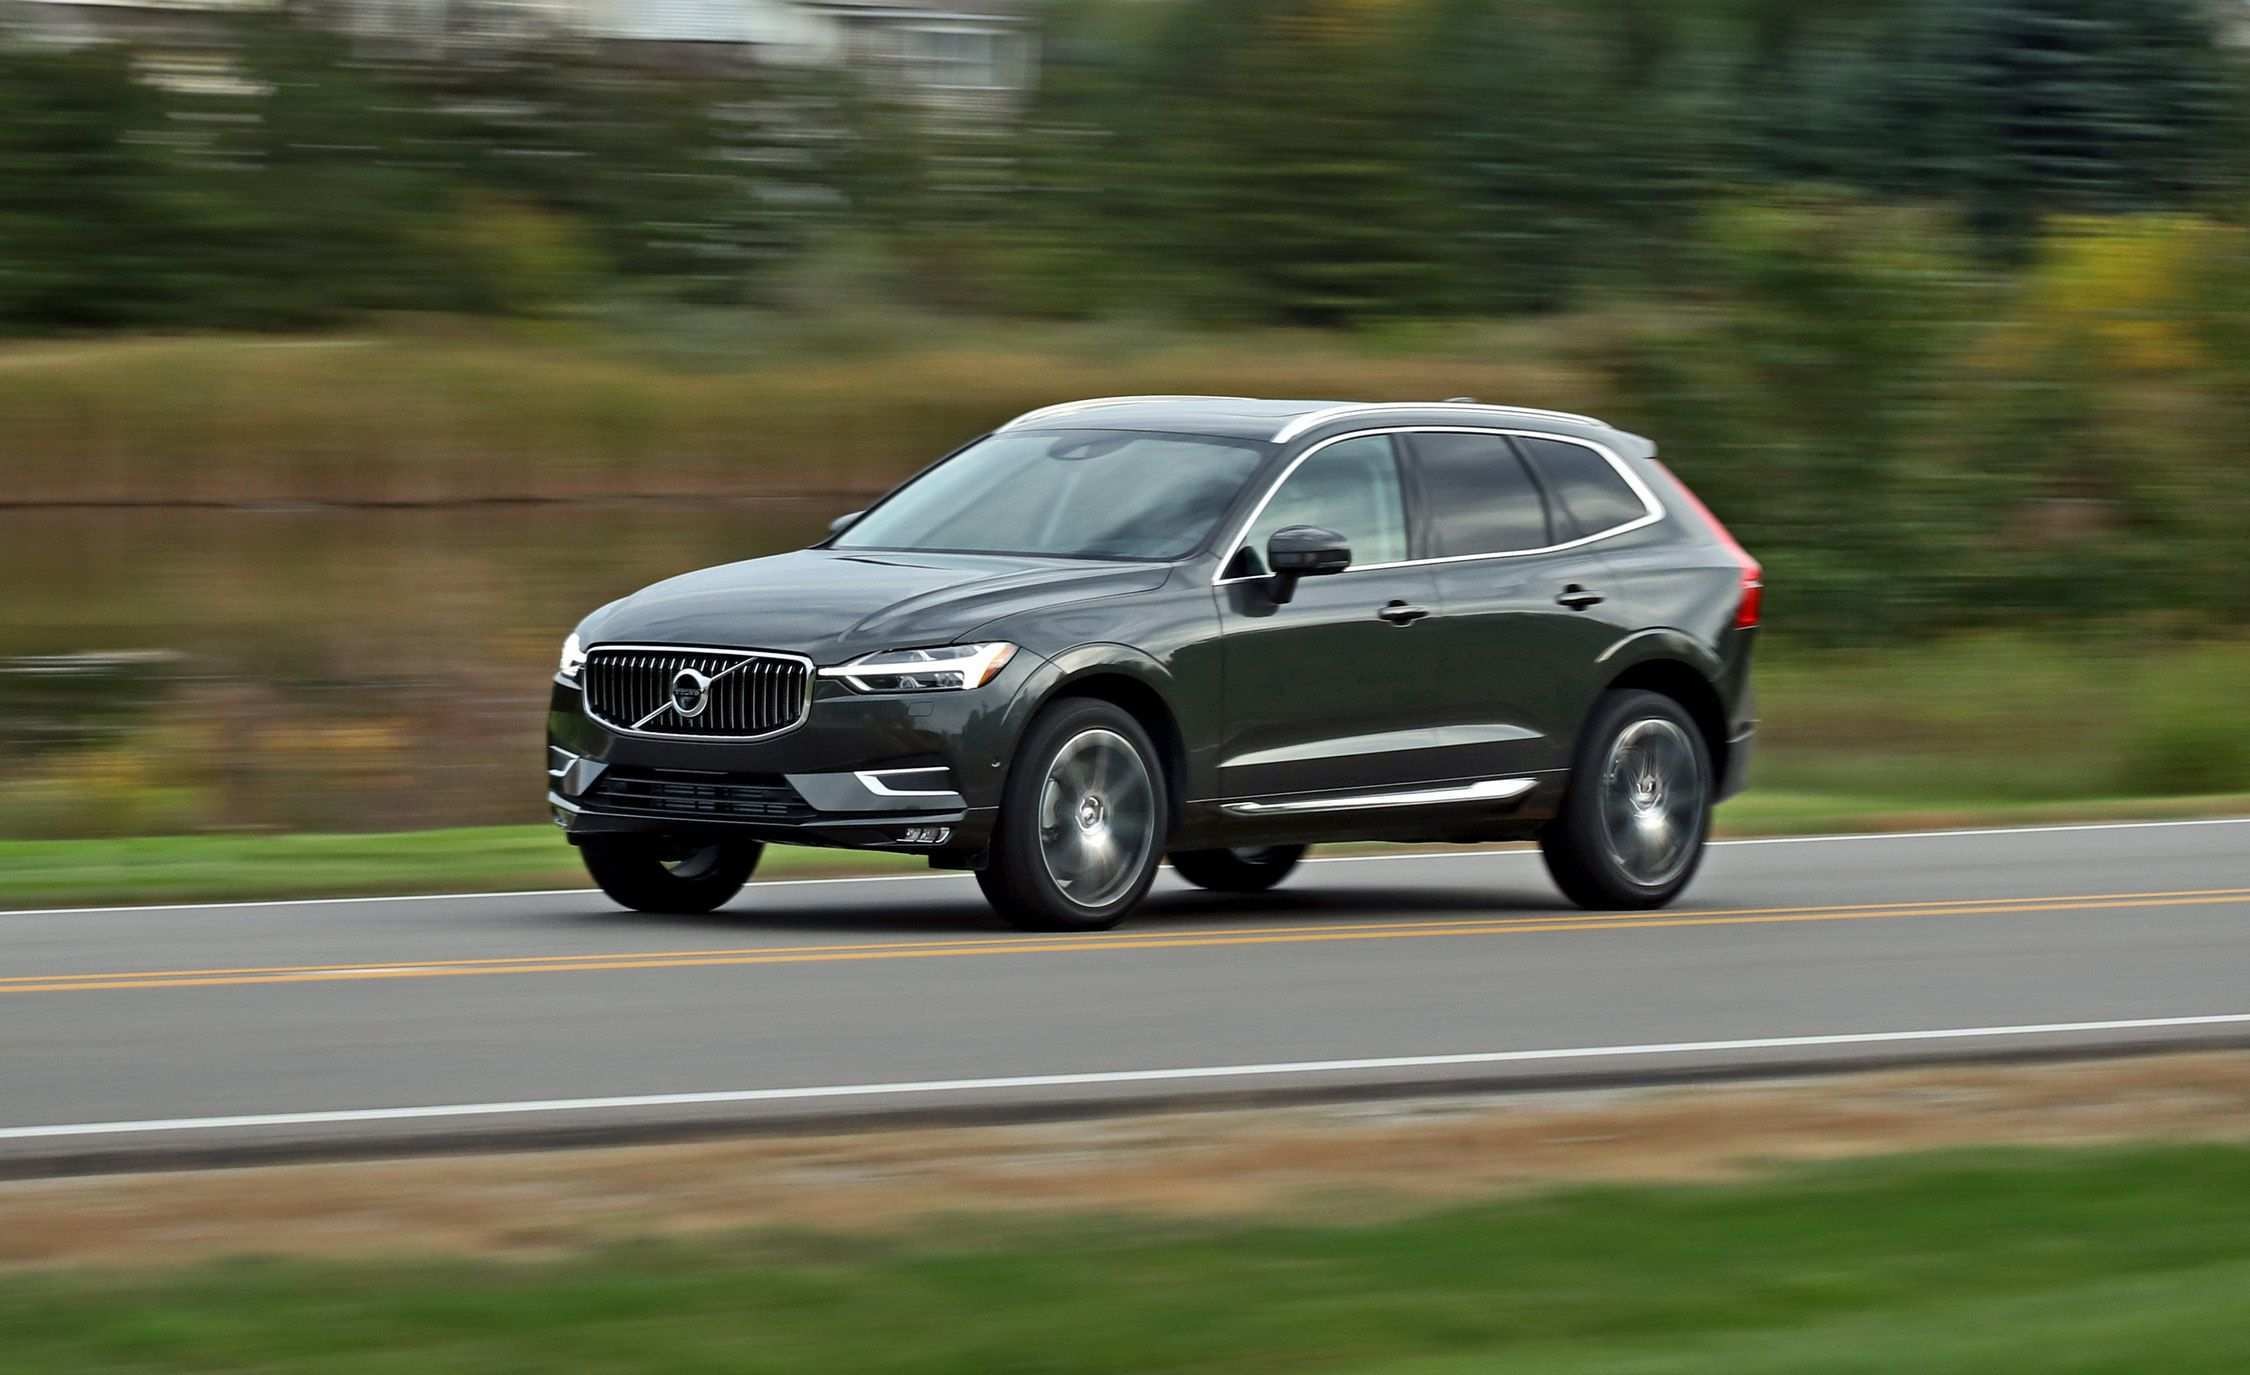 82 Best Review Volvo Xc60 2019 Manual New Review for Volvo Xc60 2019 Manual